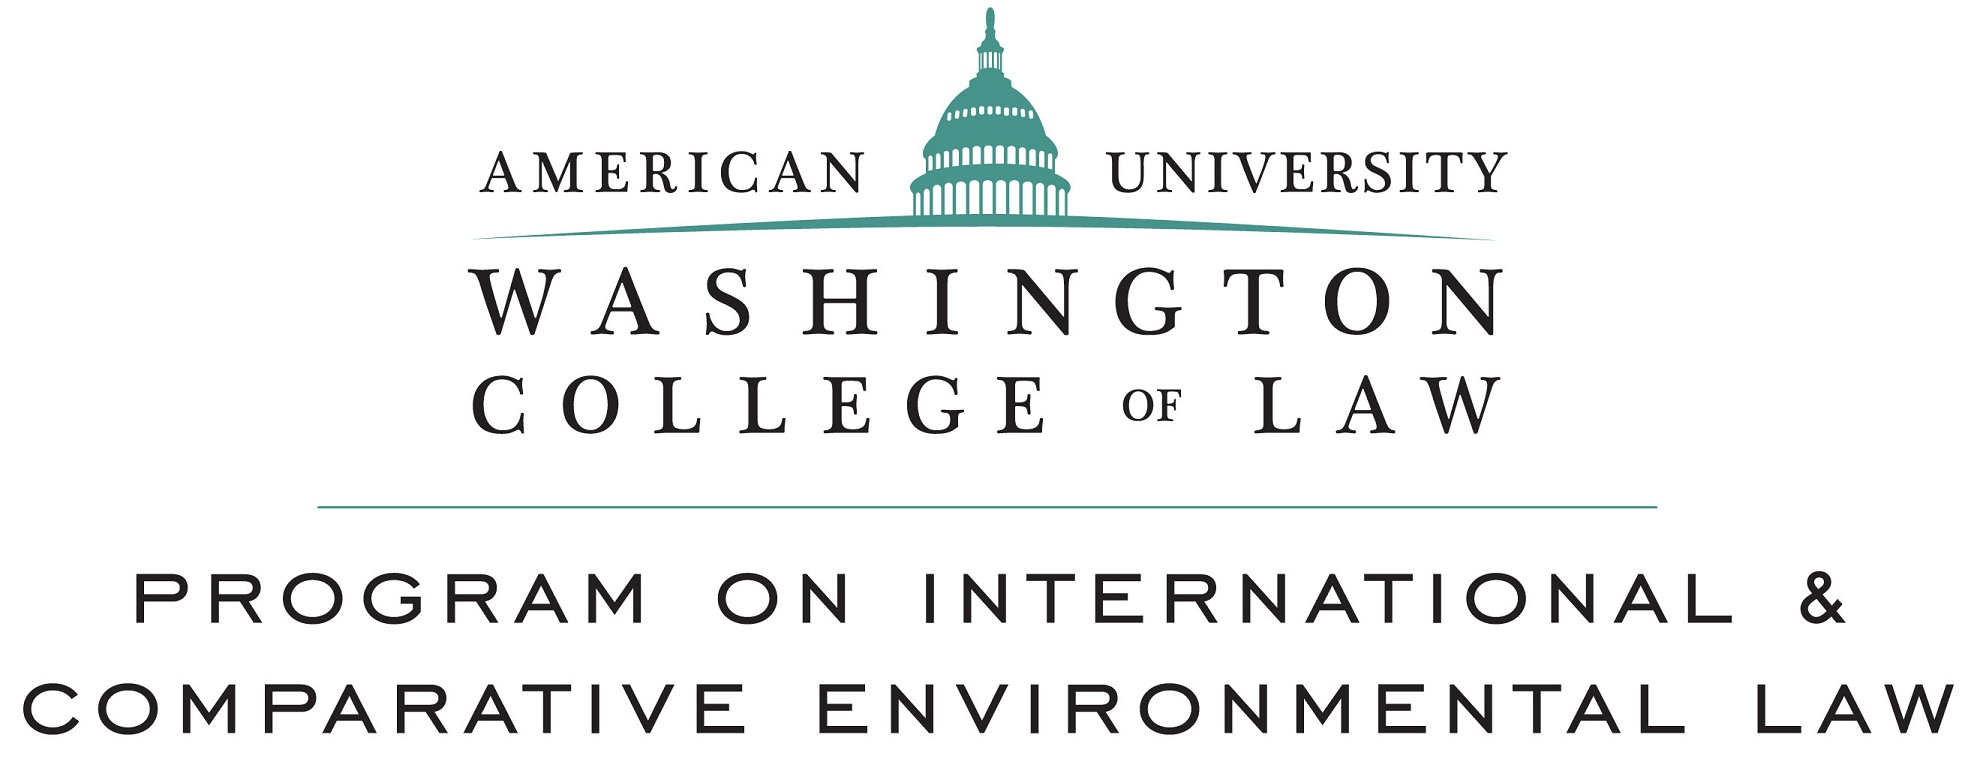 wcl_logo_comparative_environmental_law_vertical